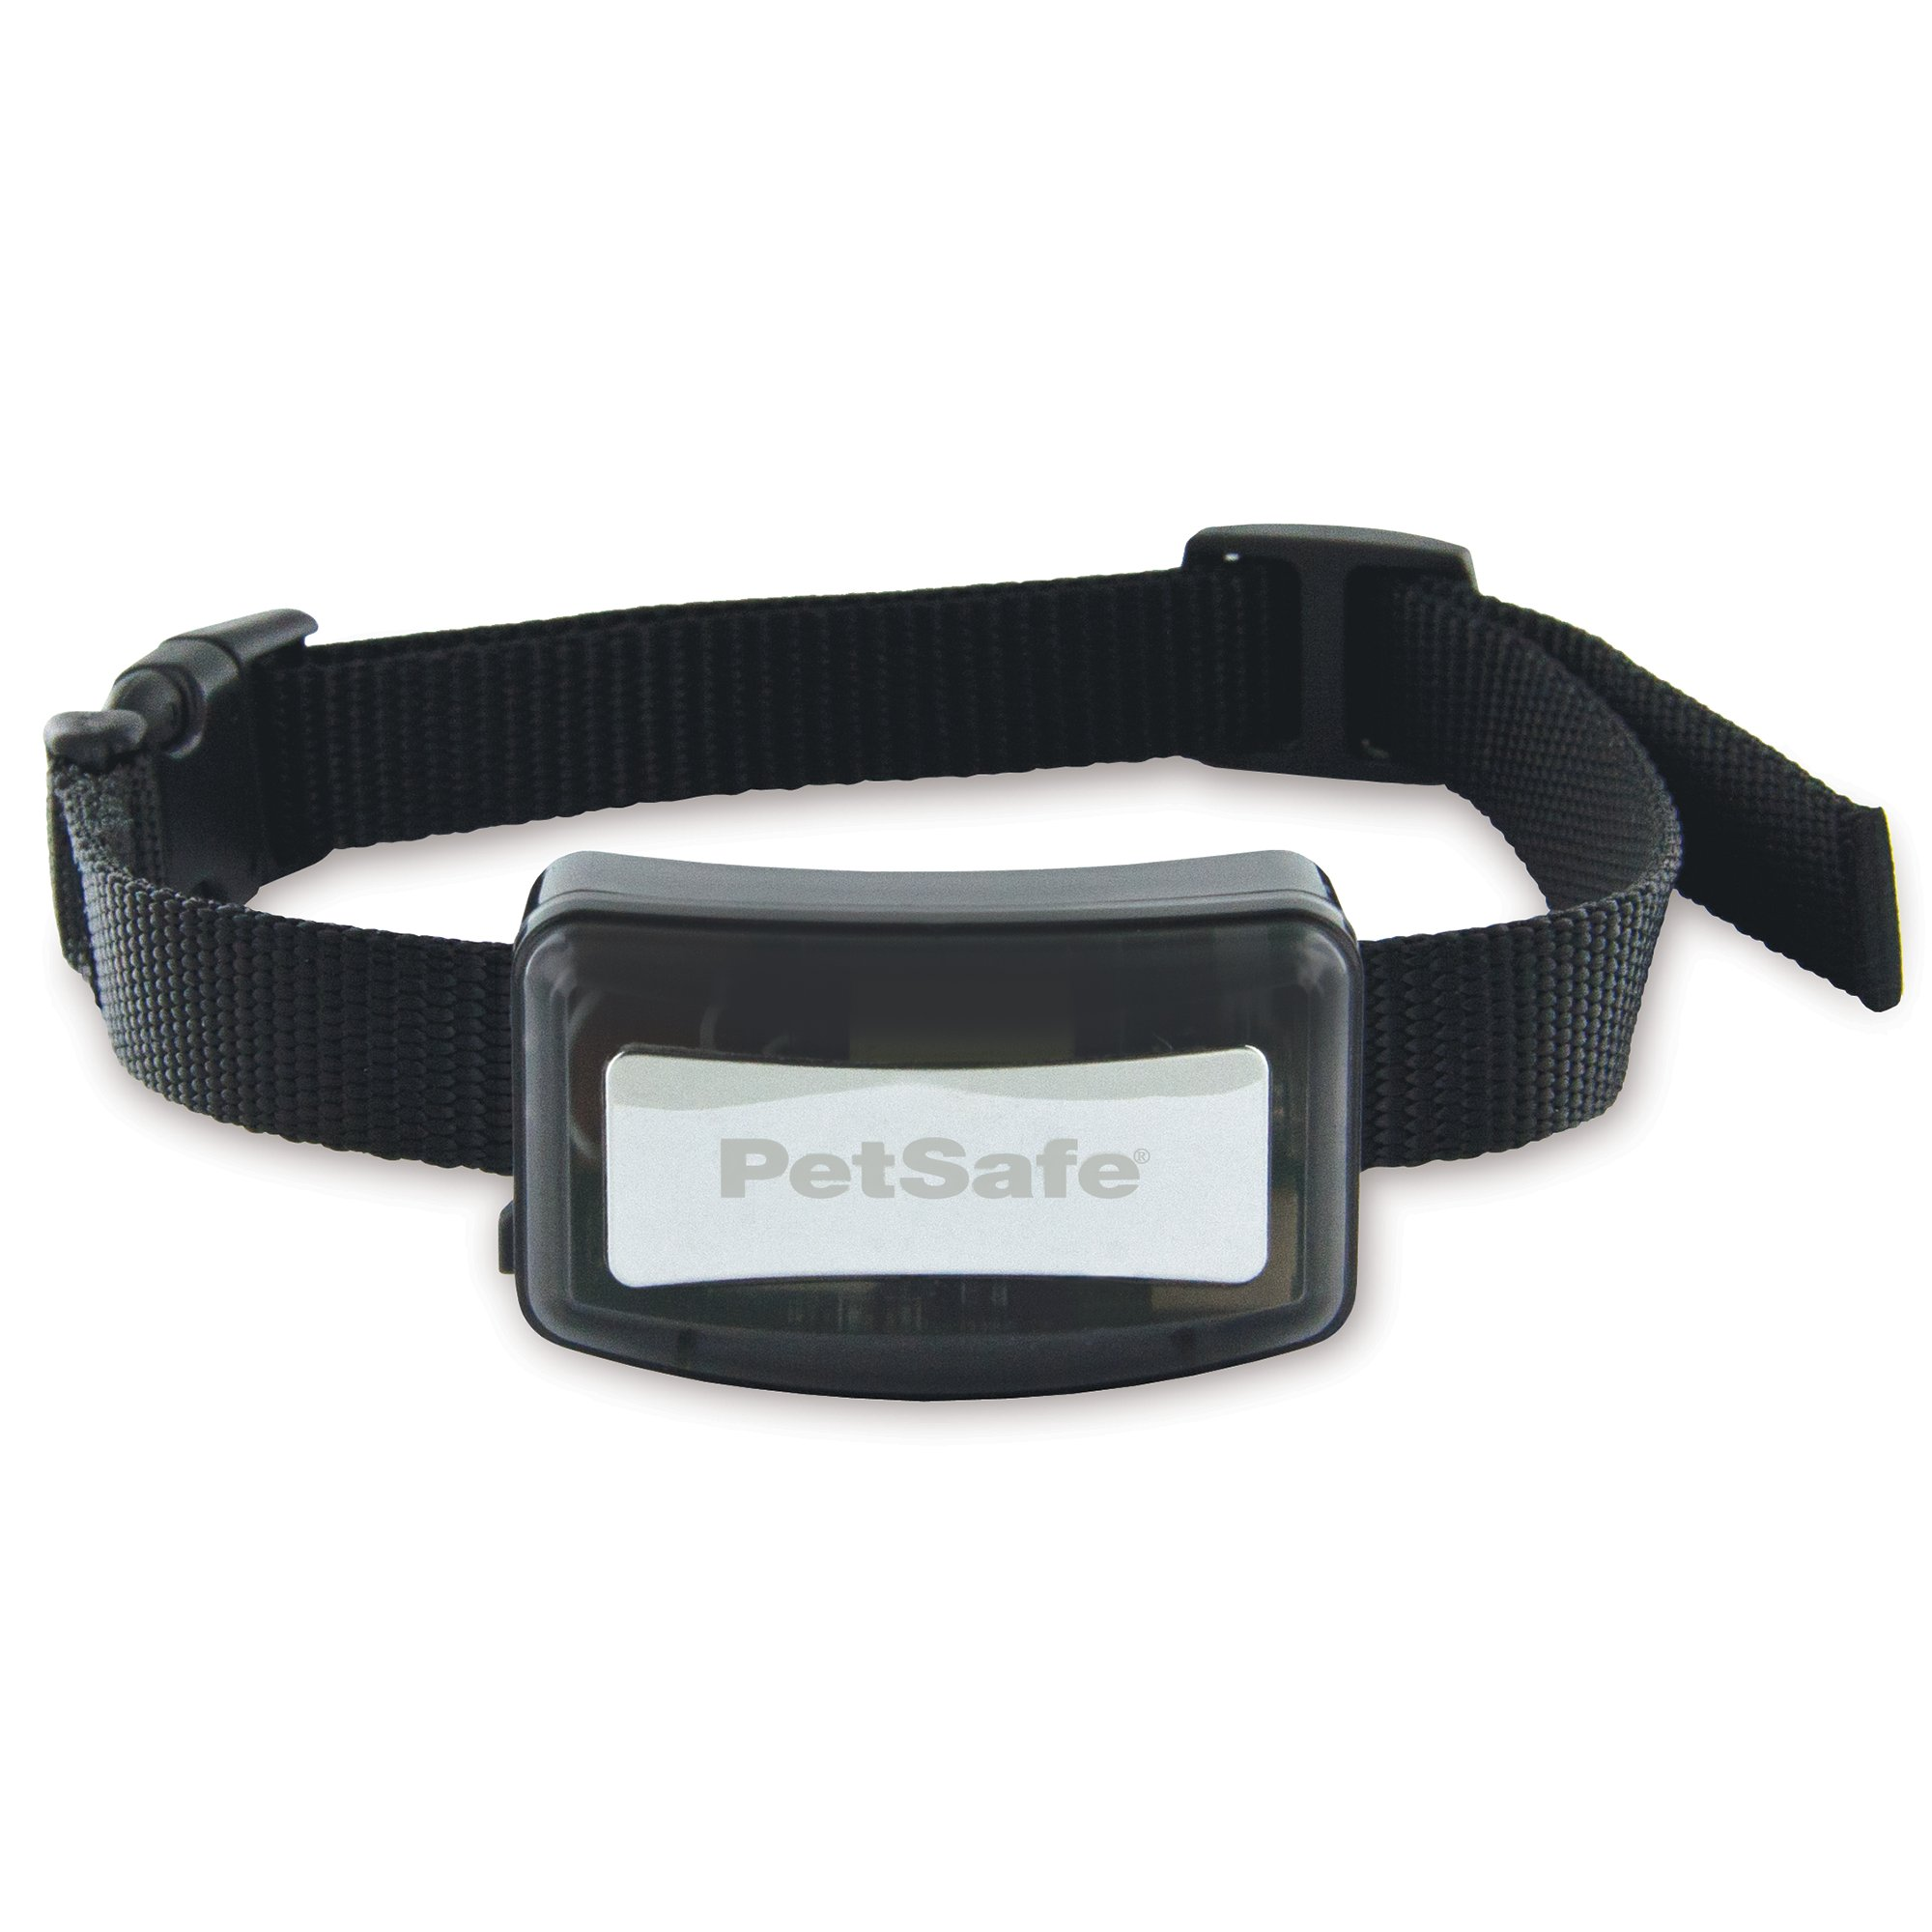 PetSafe Elite Little Dog Add-A-Dog Receiver Collar for the Elite Series Remote Trainers